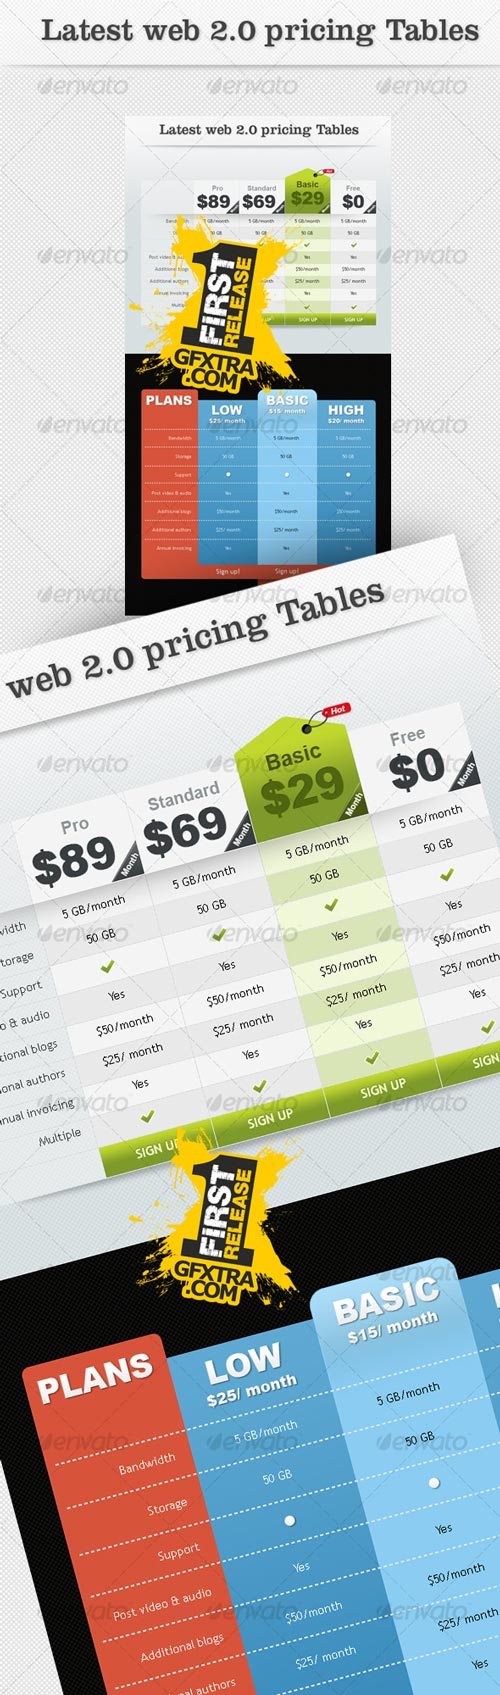 Latest Web2.0 Pricing Tables - GraphicRiver - REUPLOADED